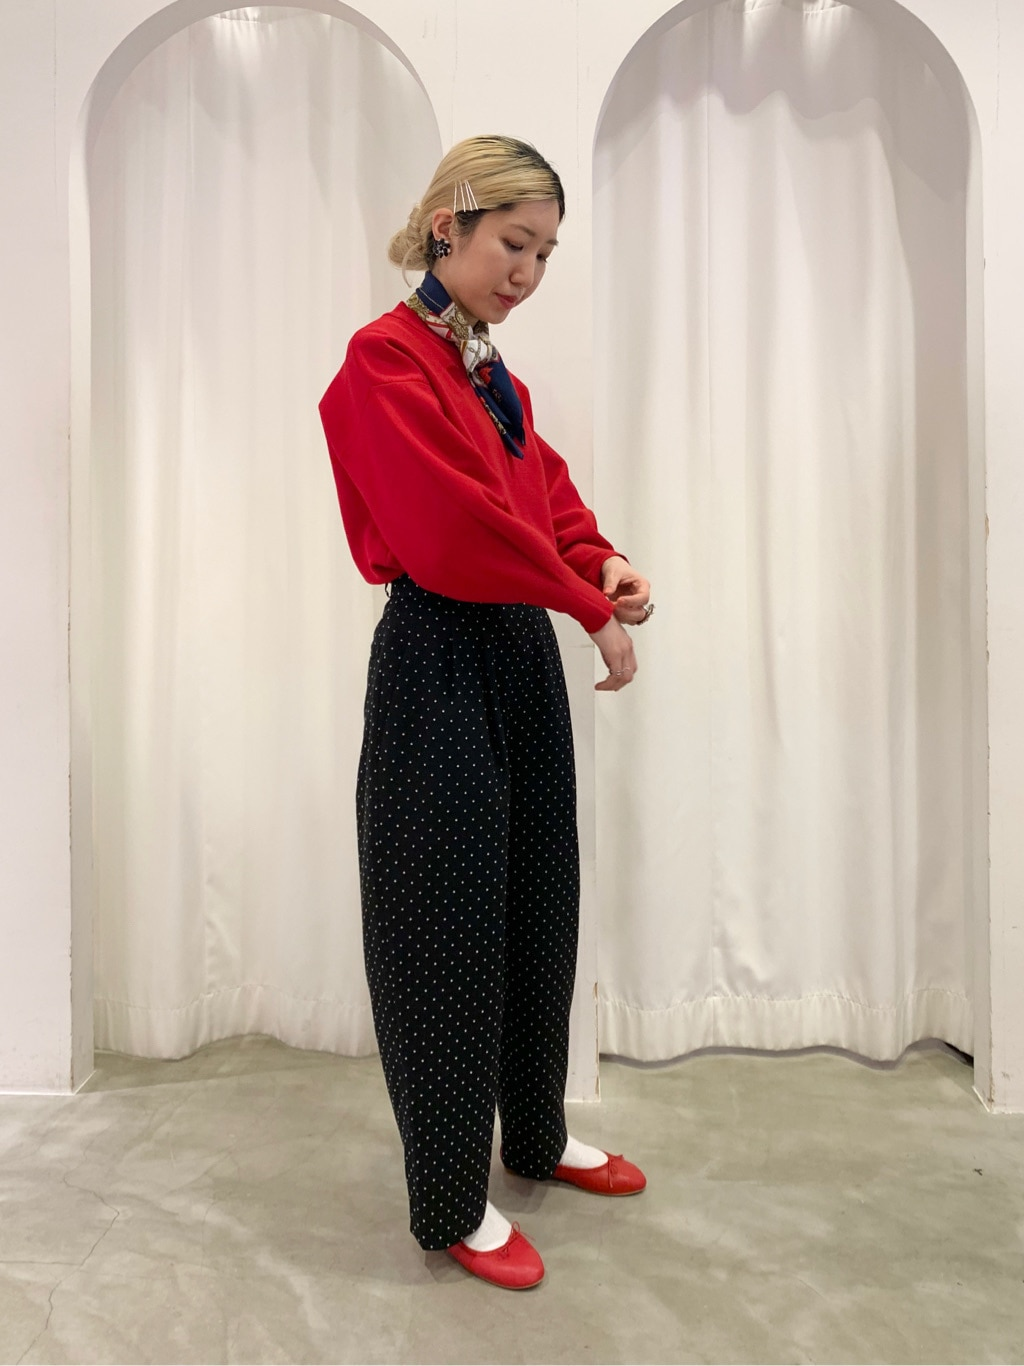 Dot and Stripes CHILD WOMAN ラフォーレ原宿 身長:160cm 2021.02.21